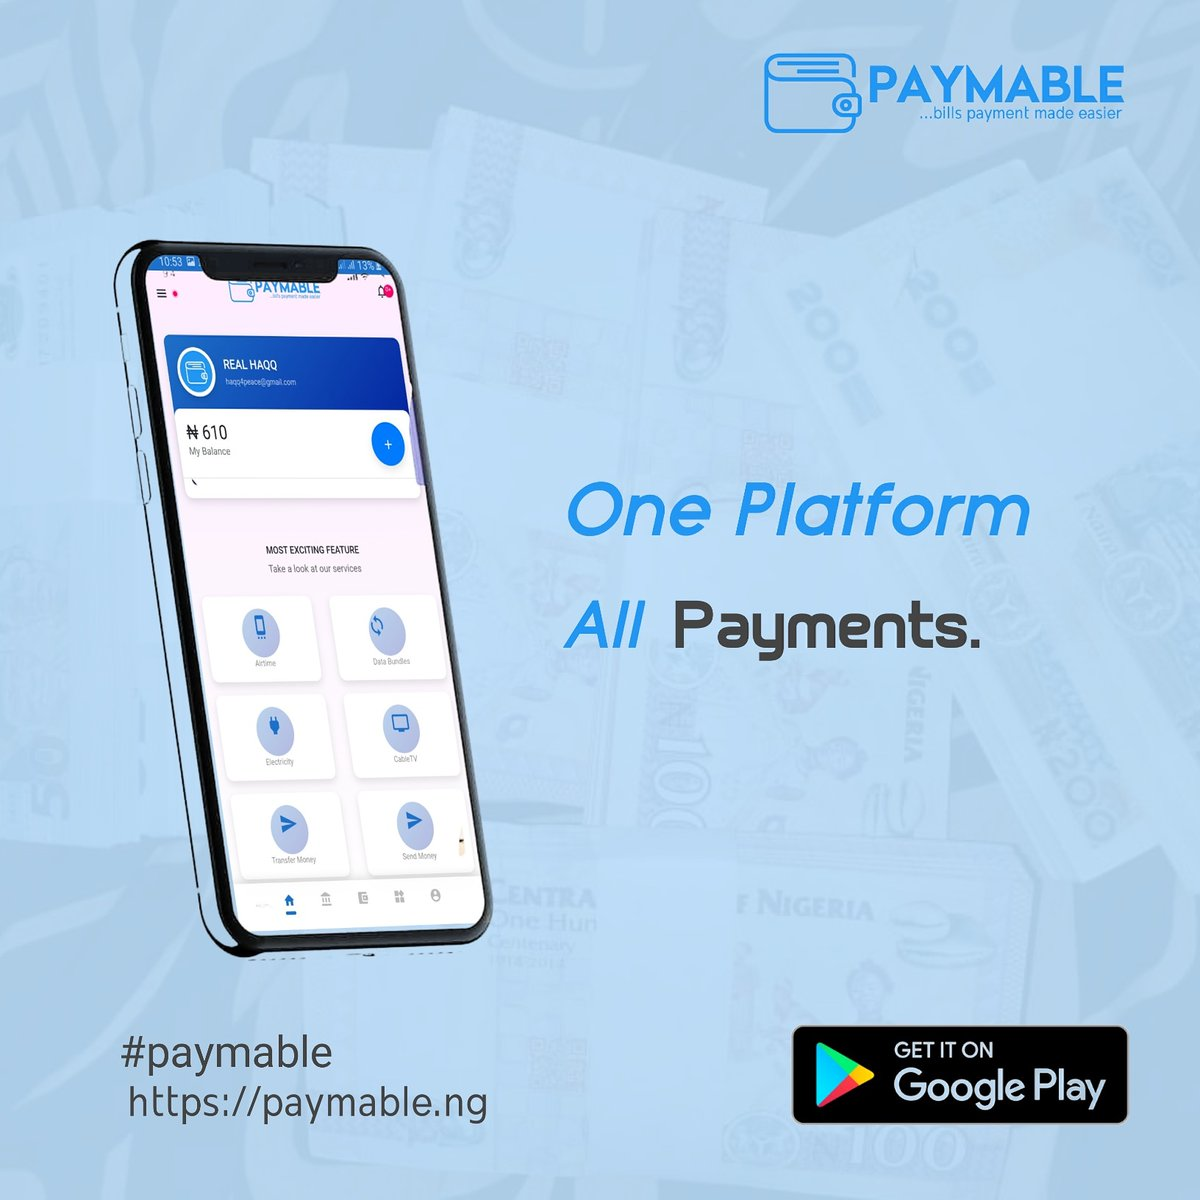 With just paymable, you can make payment for different bills.Anytime, Anywhere.Jack of all trades, master of bills. One platform...all payments.#app #paymable #pay #tech #technology #internet #bills #electricity #cable #nigeria #arewa #arewapeople #northernnigeria #developmentpic.twitter.com/ejvvJq7Srw